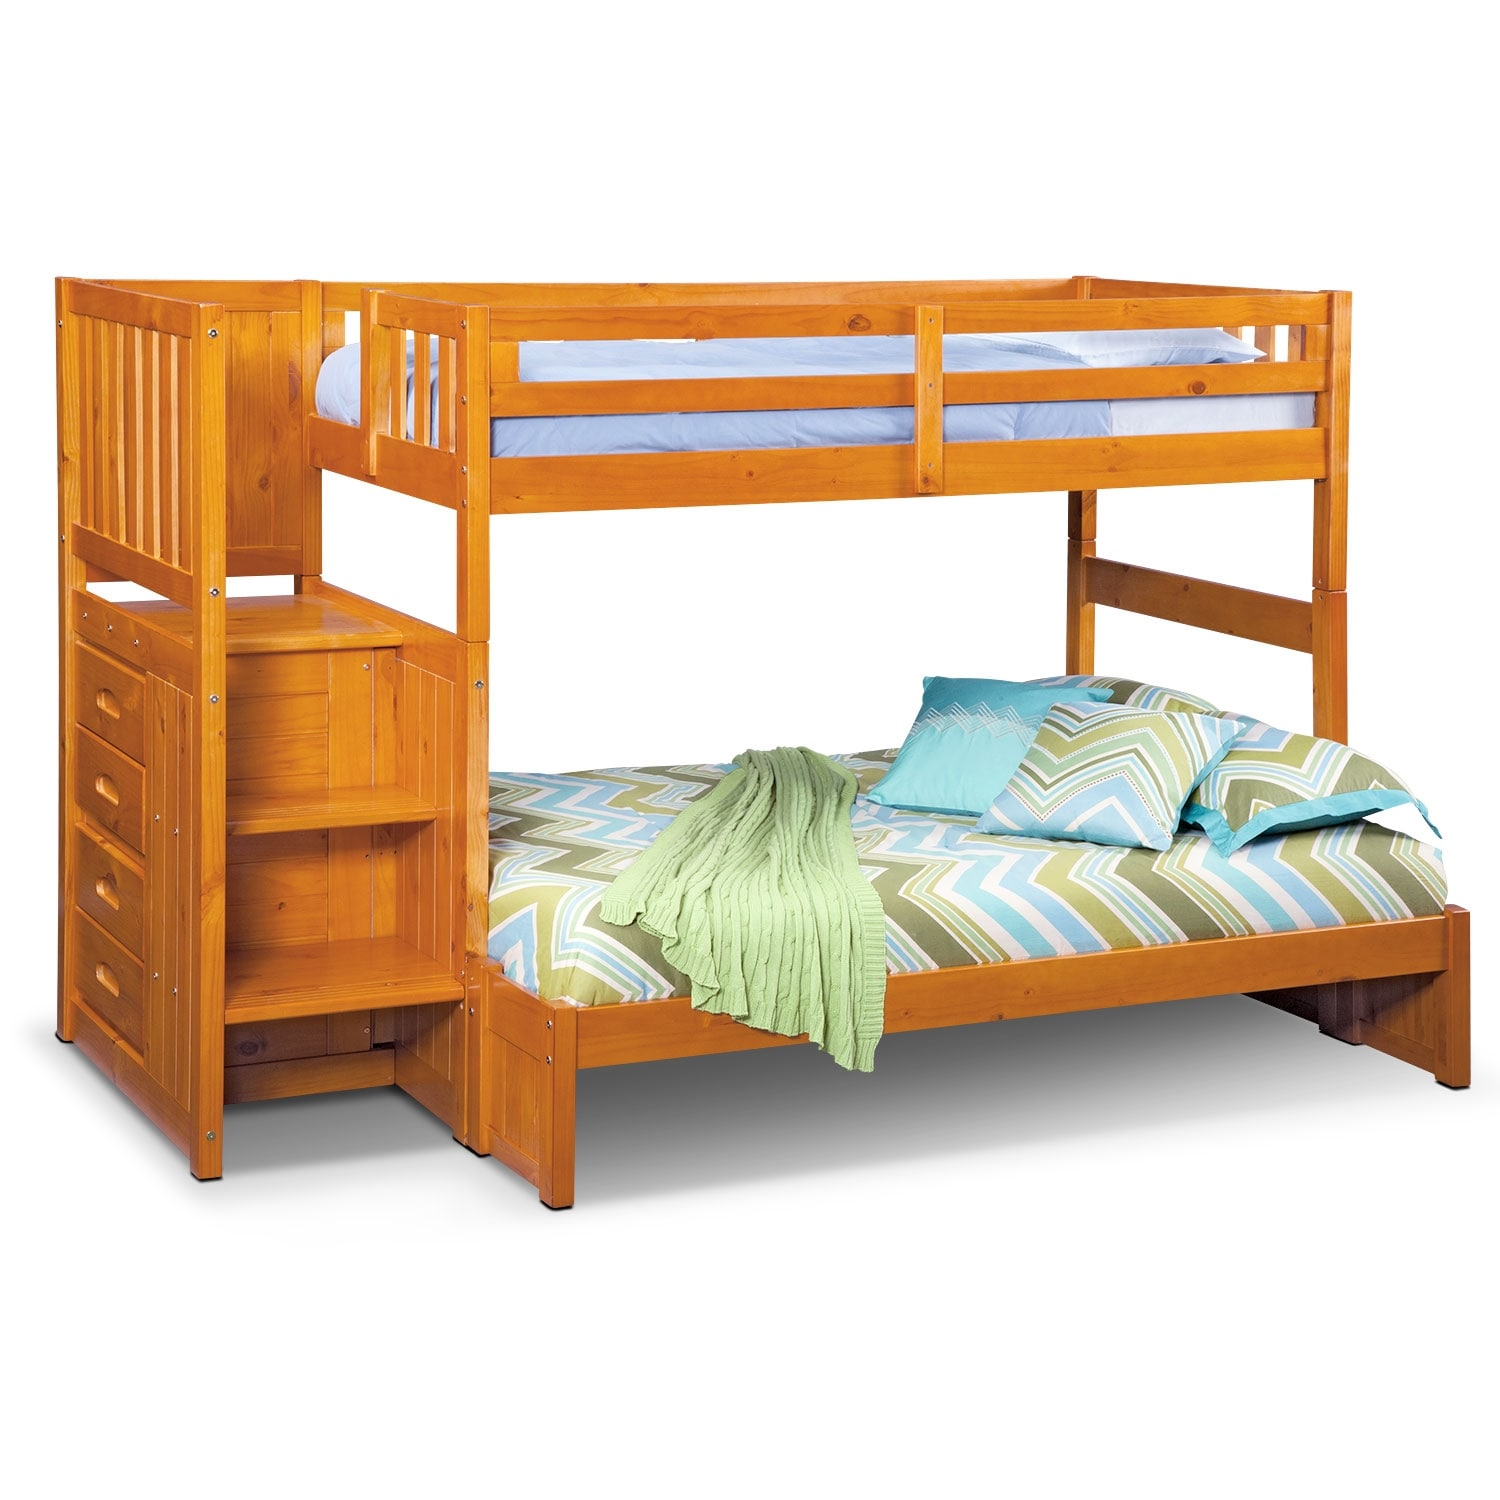 ranger twin over full bunk bed with storage stairs pine value city furniture and mattresses. Black Bedroom Furniture Sets. Home Design Ideas